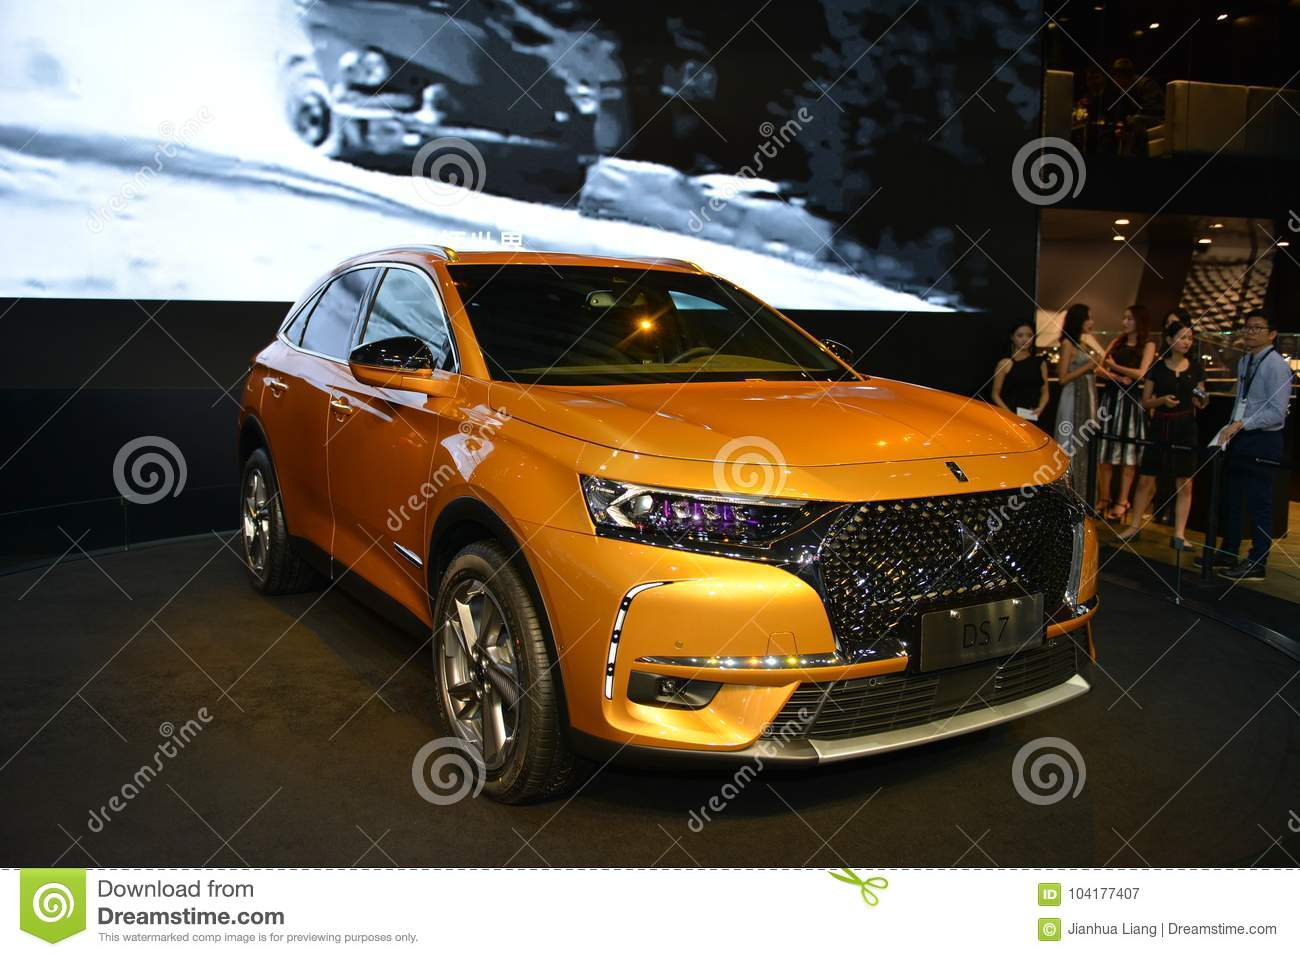 Citroen Ds7 Citroen Ds7 Crossback Suv Editorial Photography Image Of